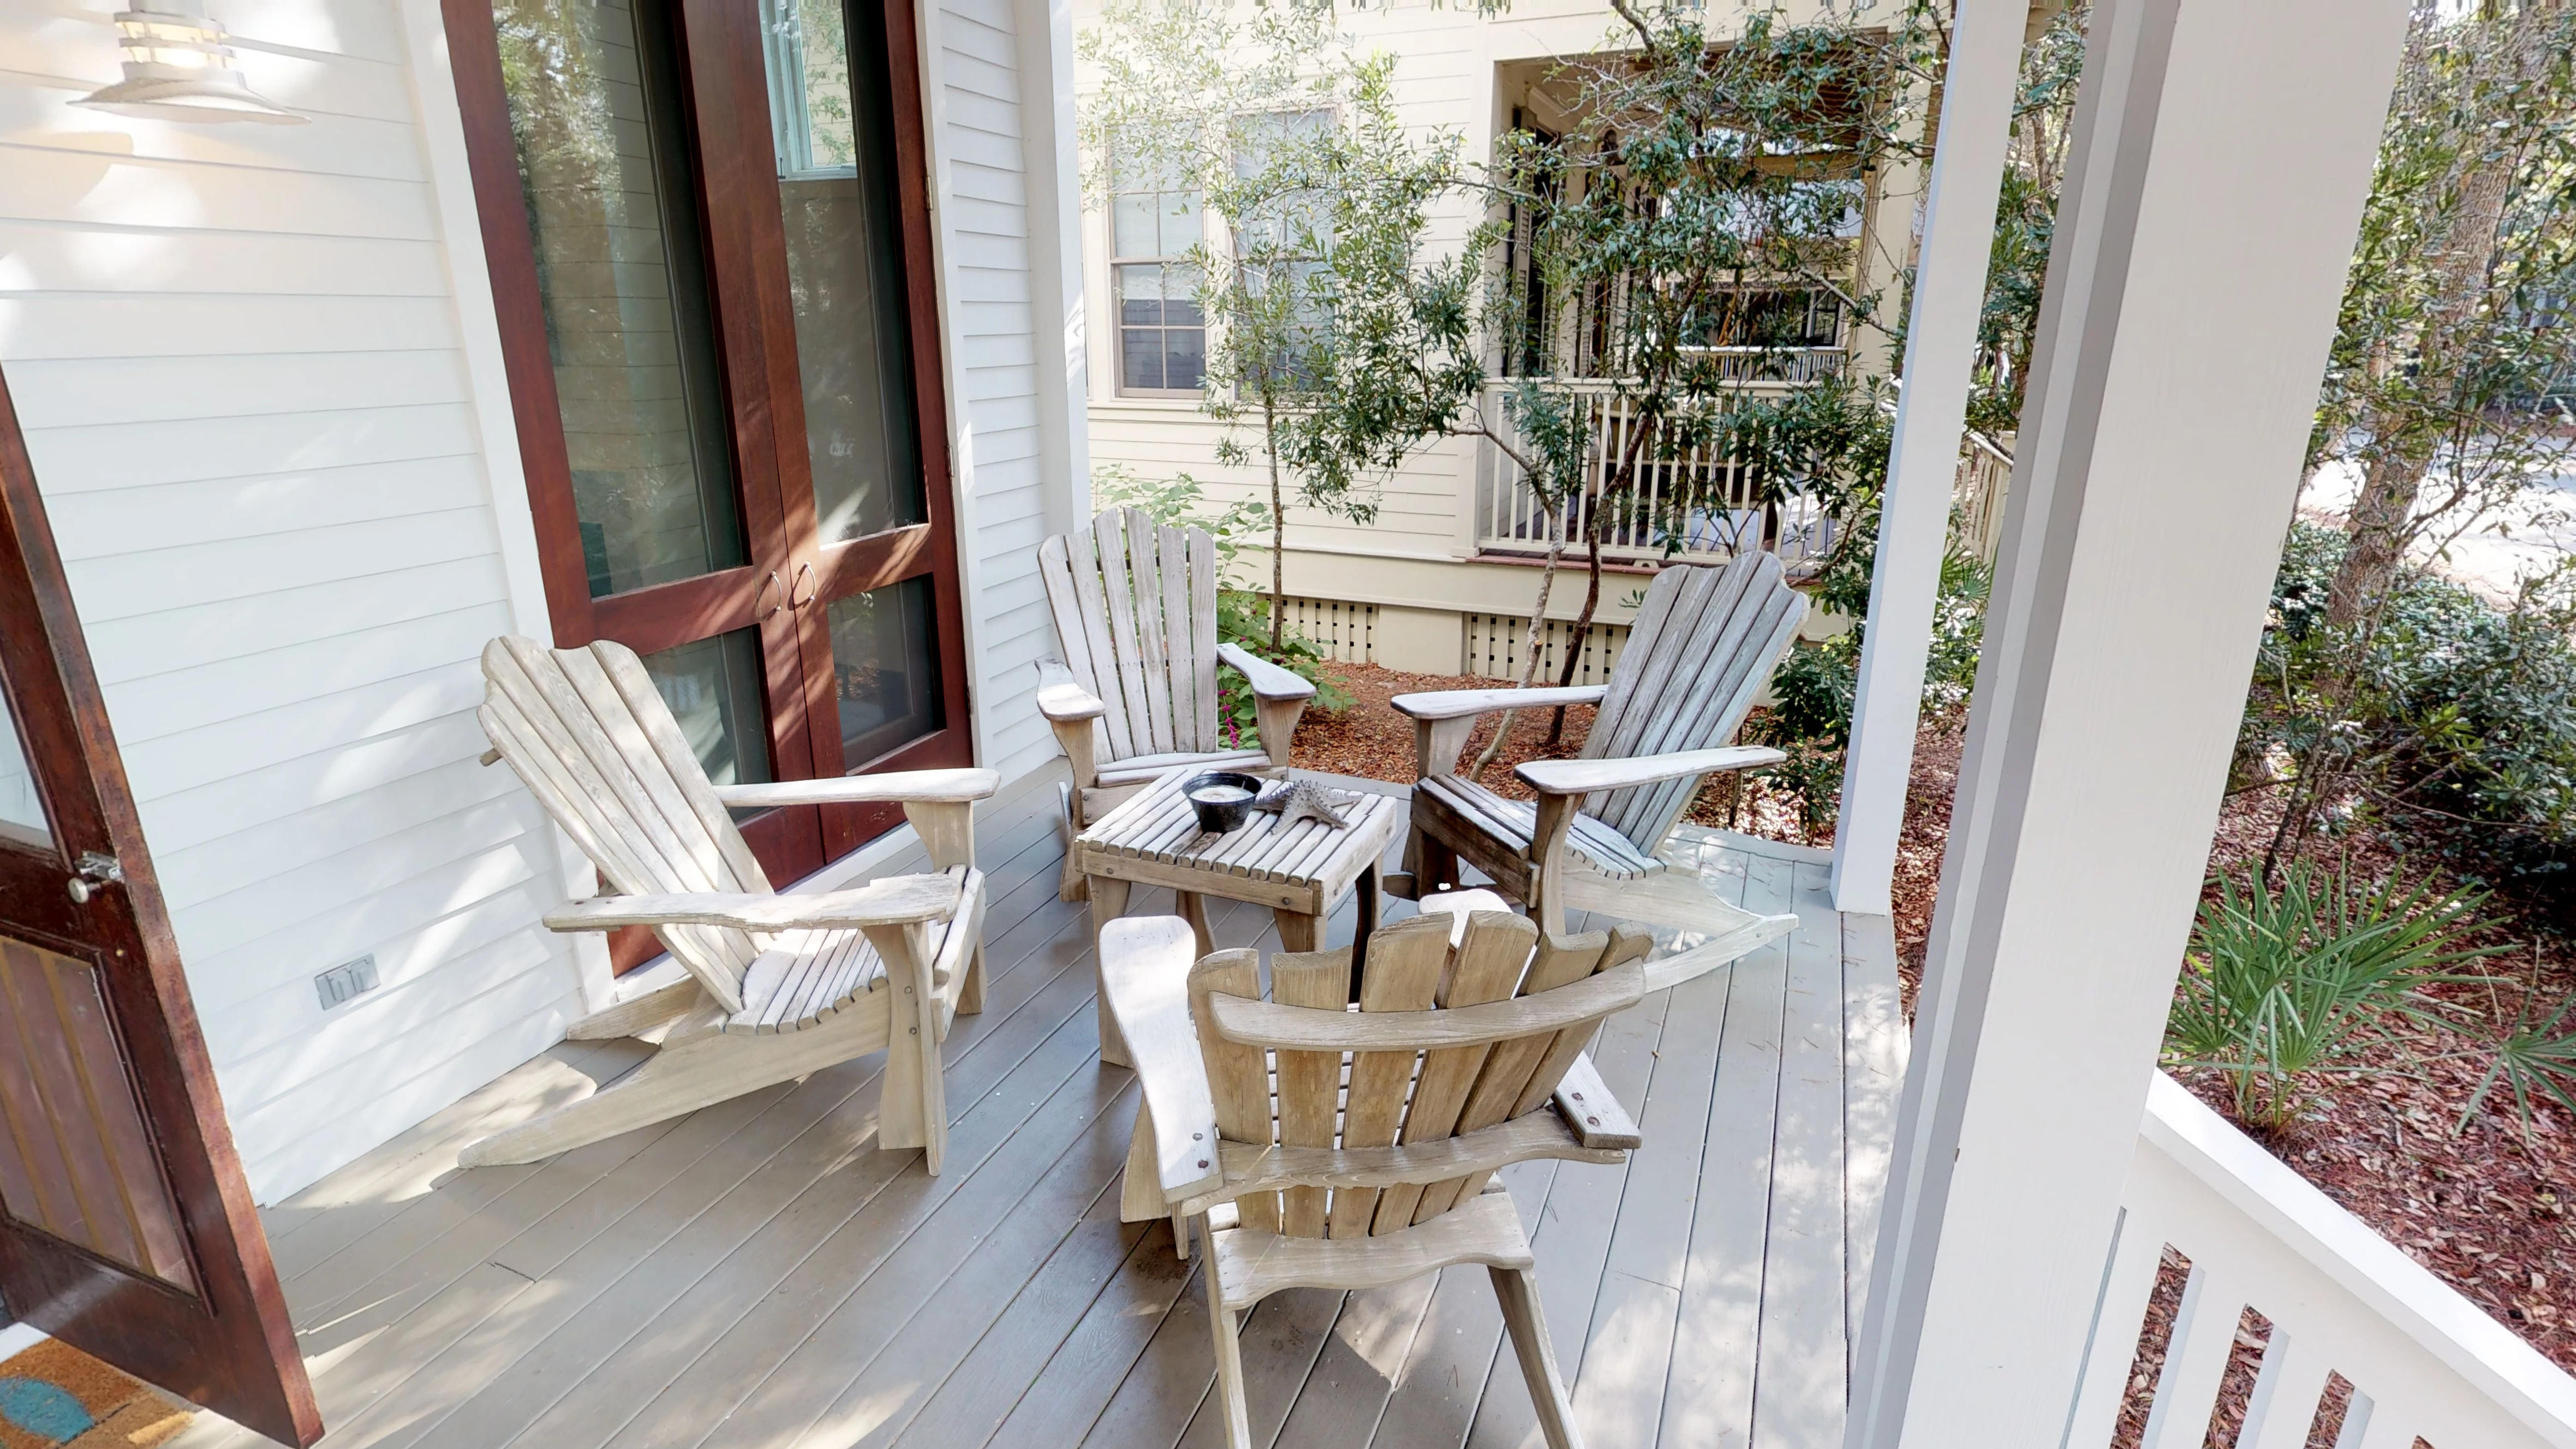 Conversational seating on the front porch